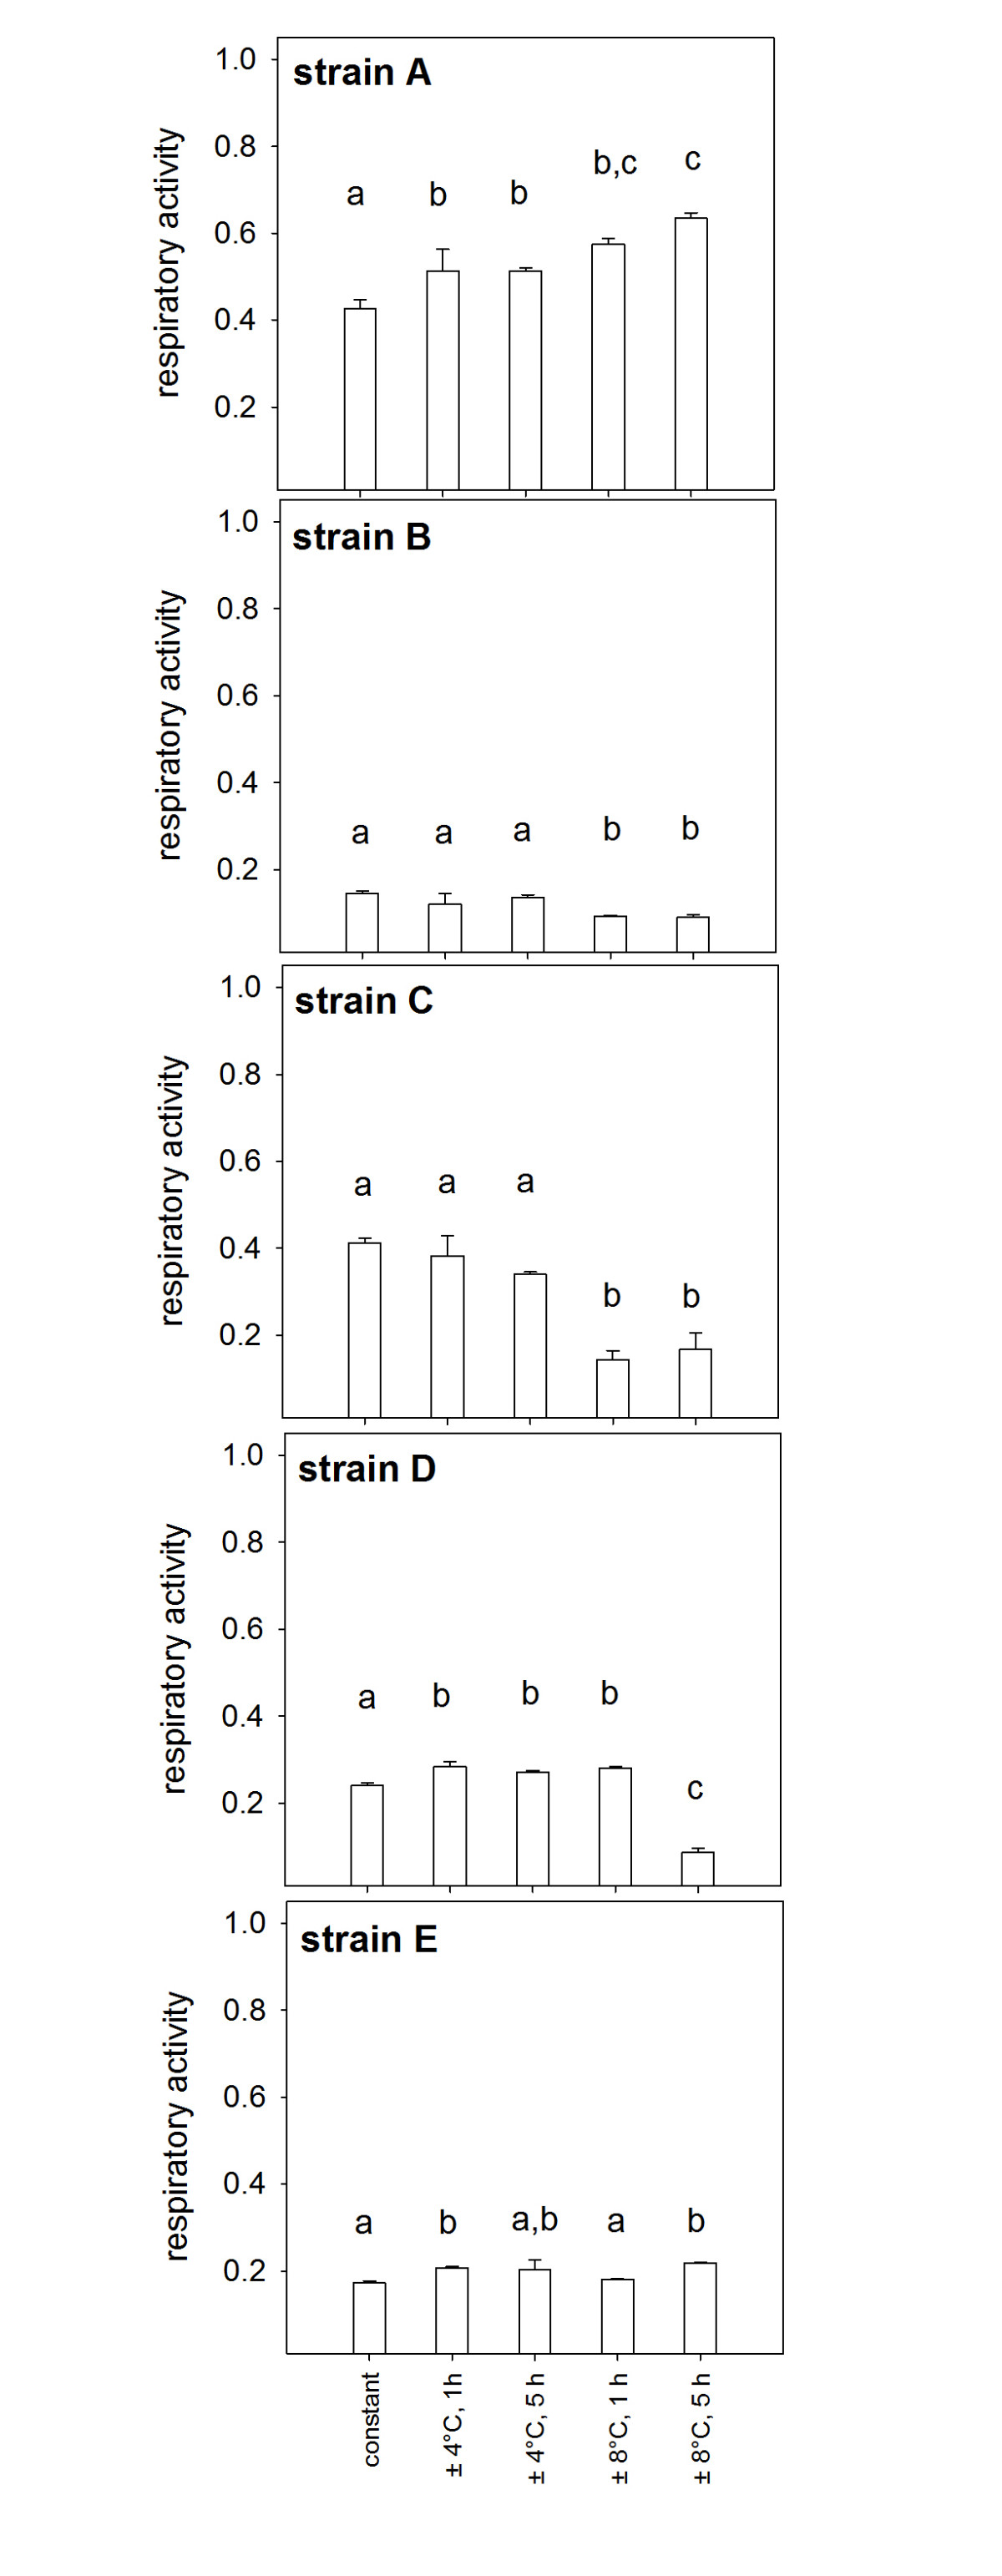 http://static-content.springer.com/image/art%3A10.1186%2F1472-6785-12-14/MediaObjects/12898_2012_Article_202_Fig6_HTML.jpg